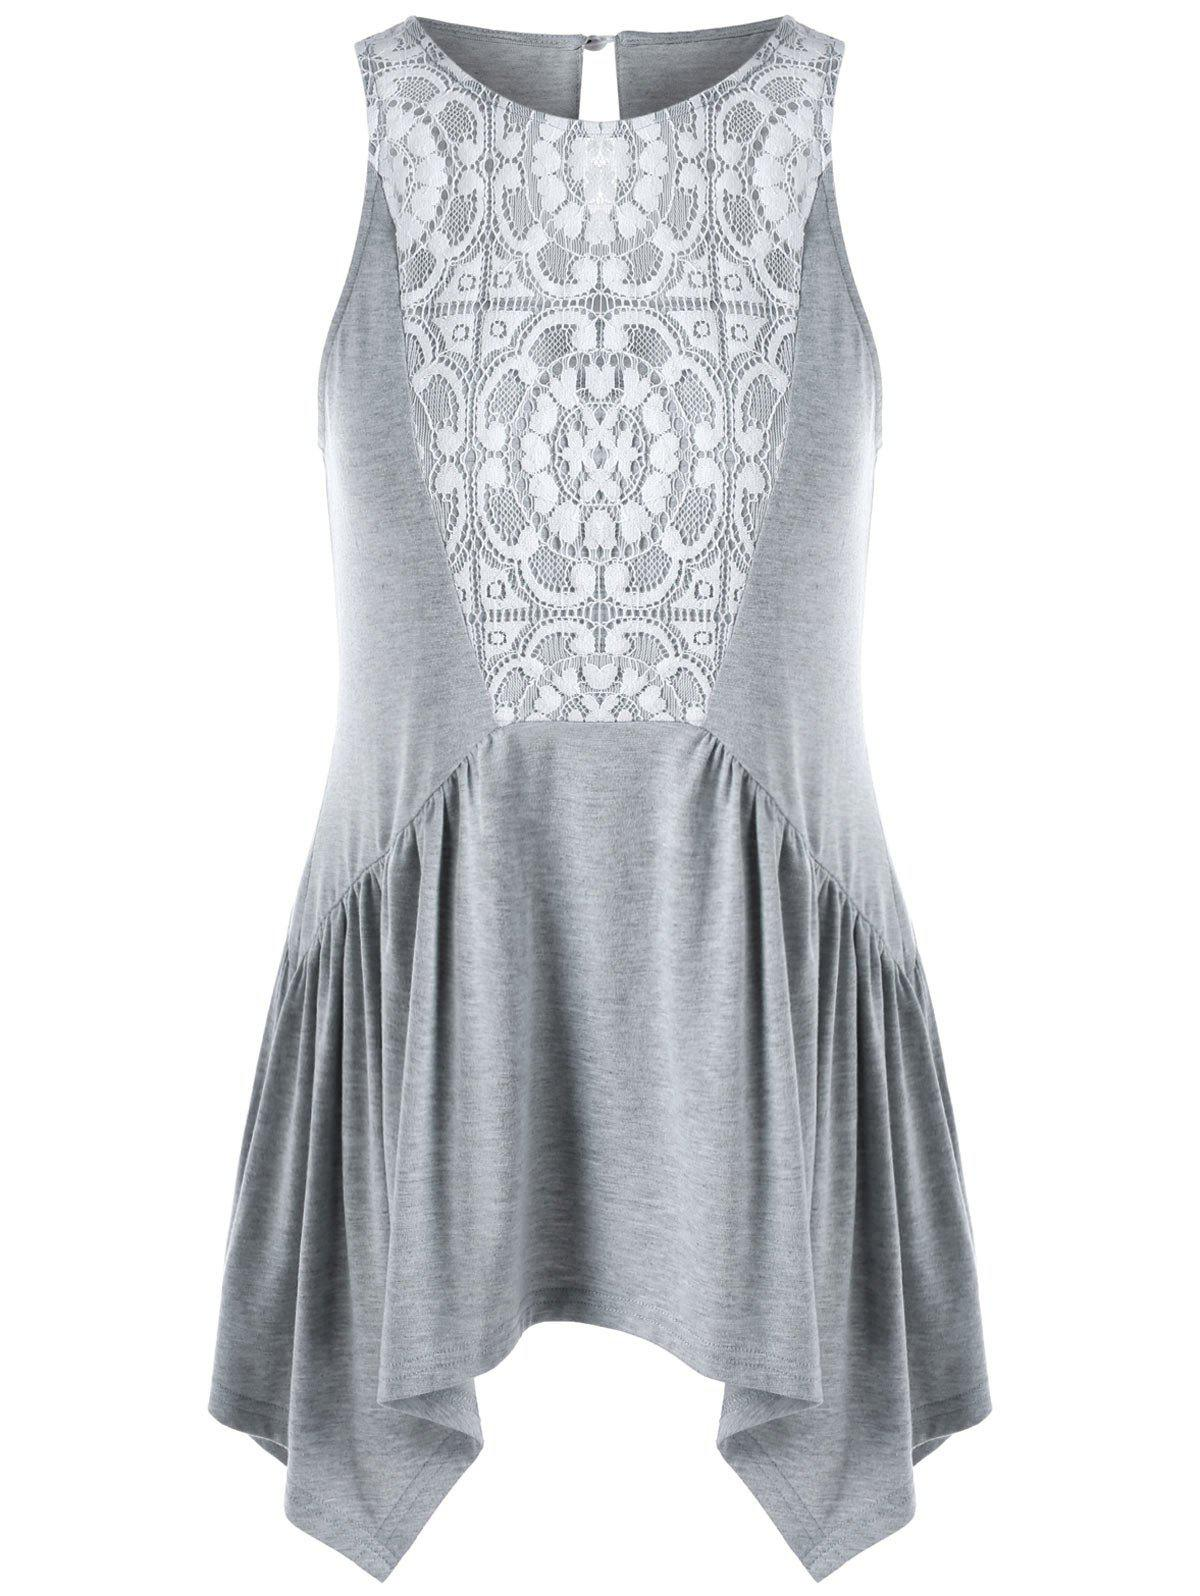 Trendy Lace Insert Swing Tank Top